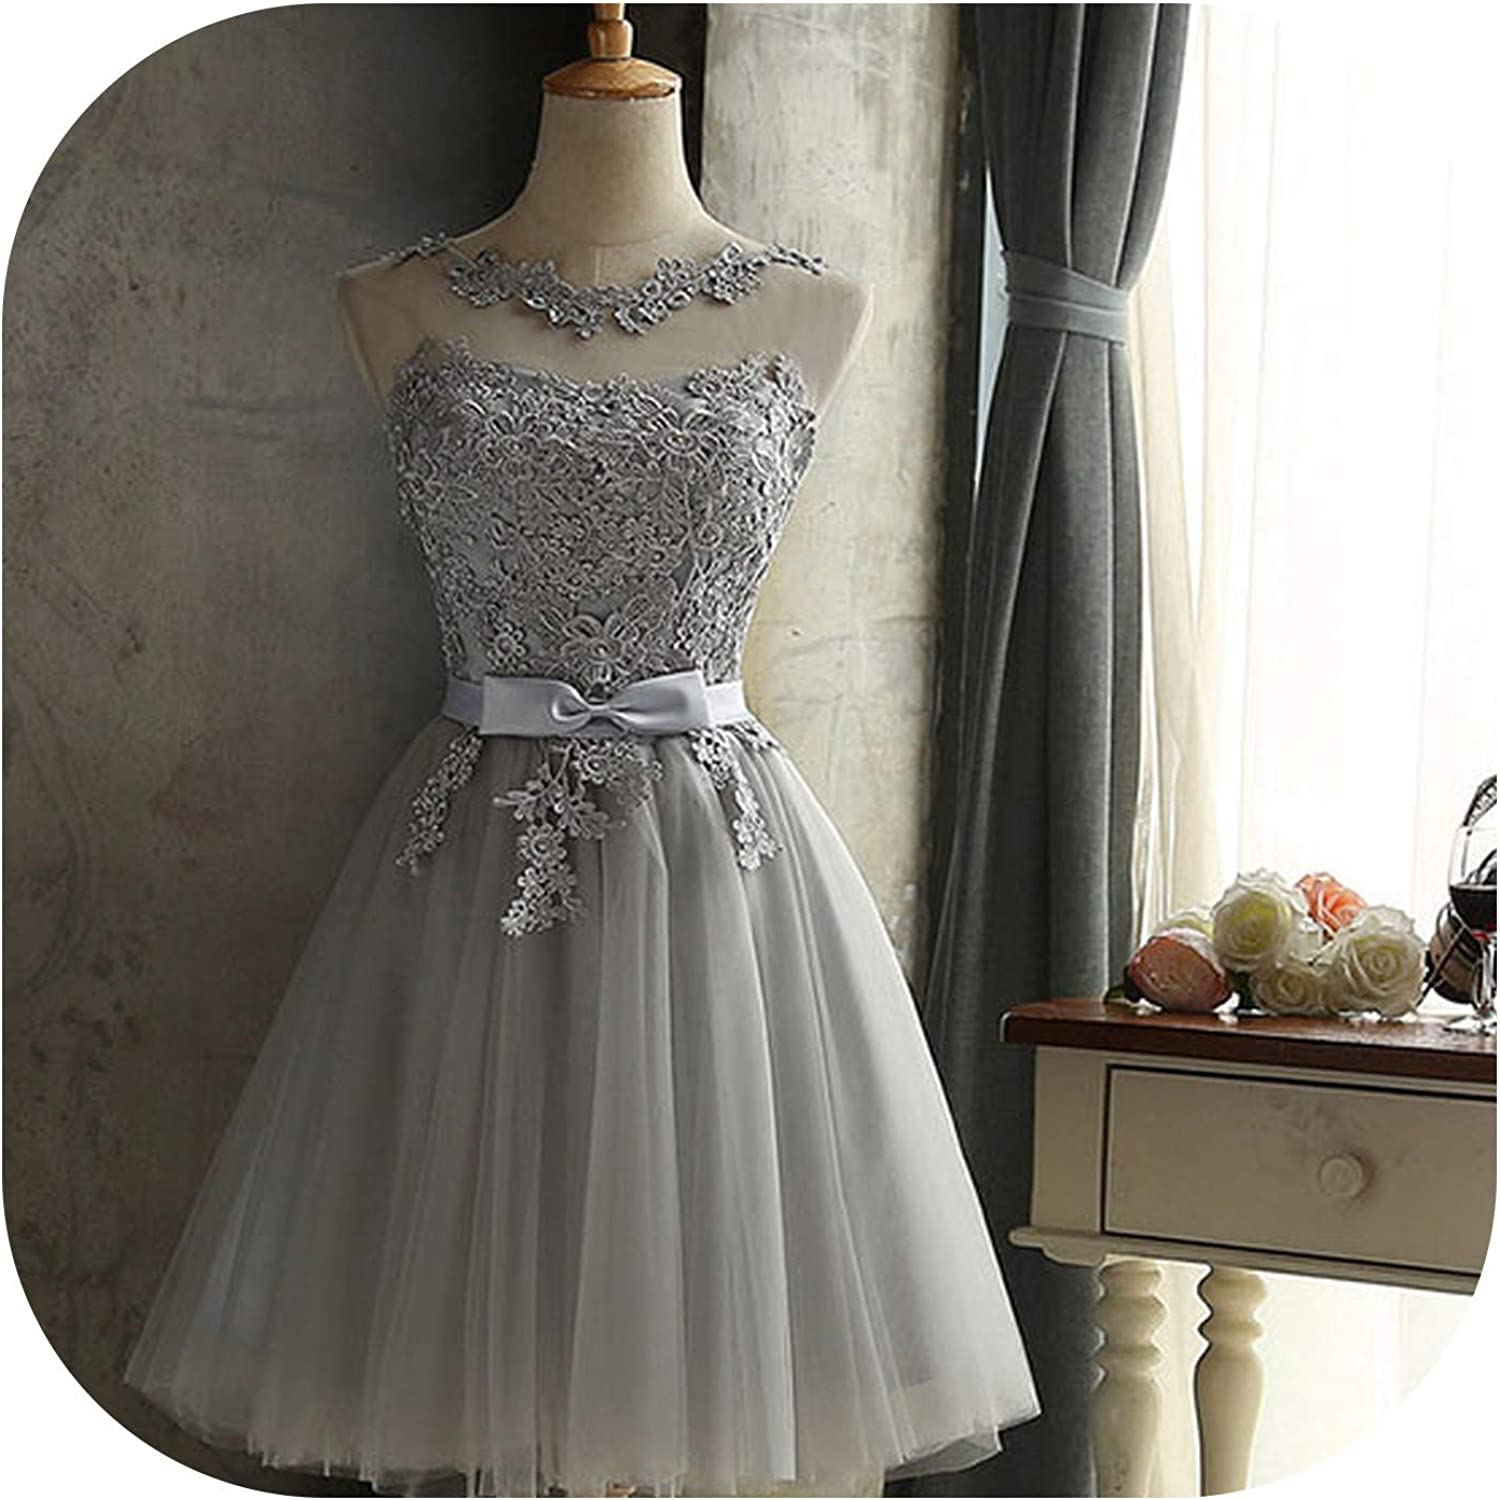 Short Prom Dresses Sexy Backless Lace Up Prom Gown Formal Dress Women Occasion Party Dresses